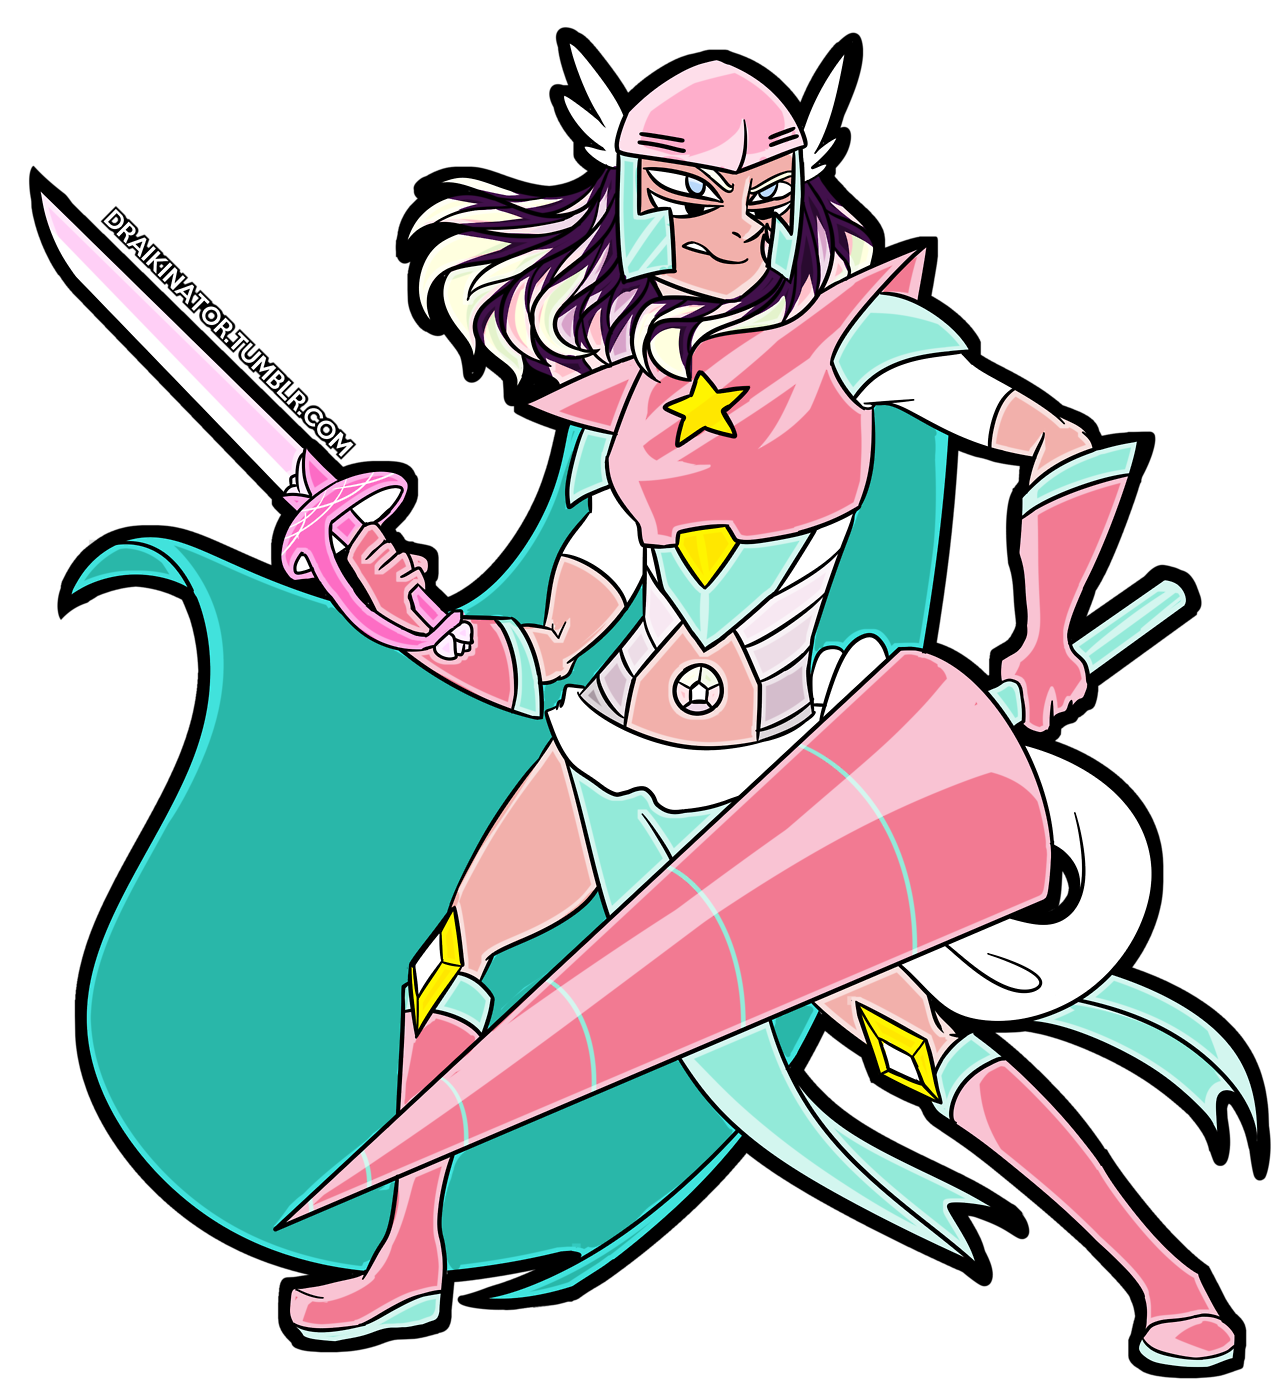 Commission for @a-universe-reborn of their pearl/stevonnie fusion!! It's a sick knight version of Rainbow Quartz!